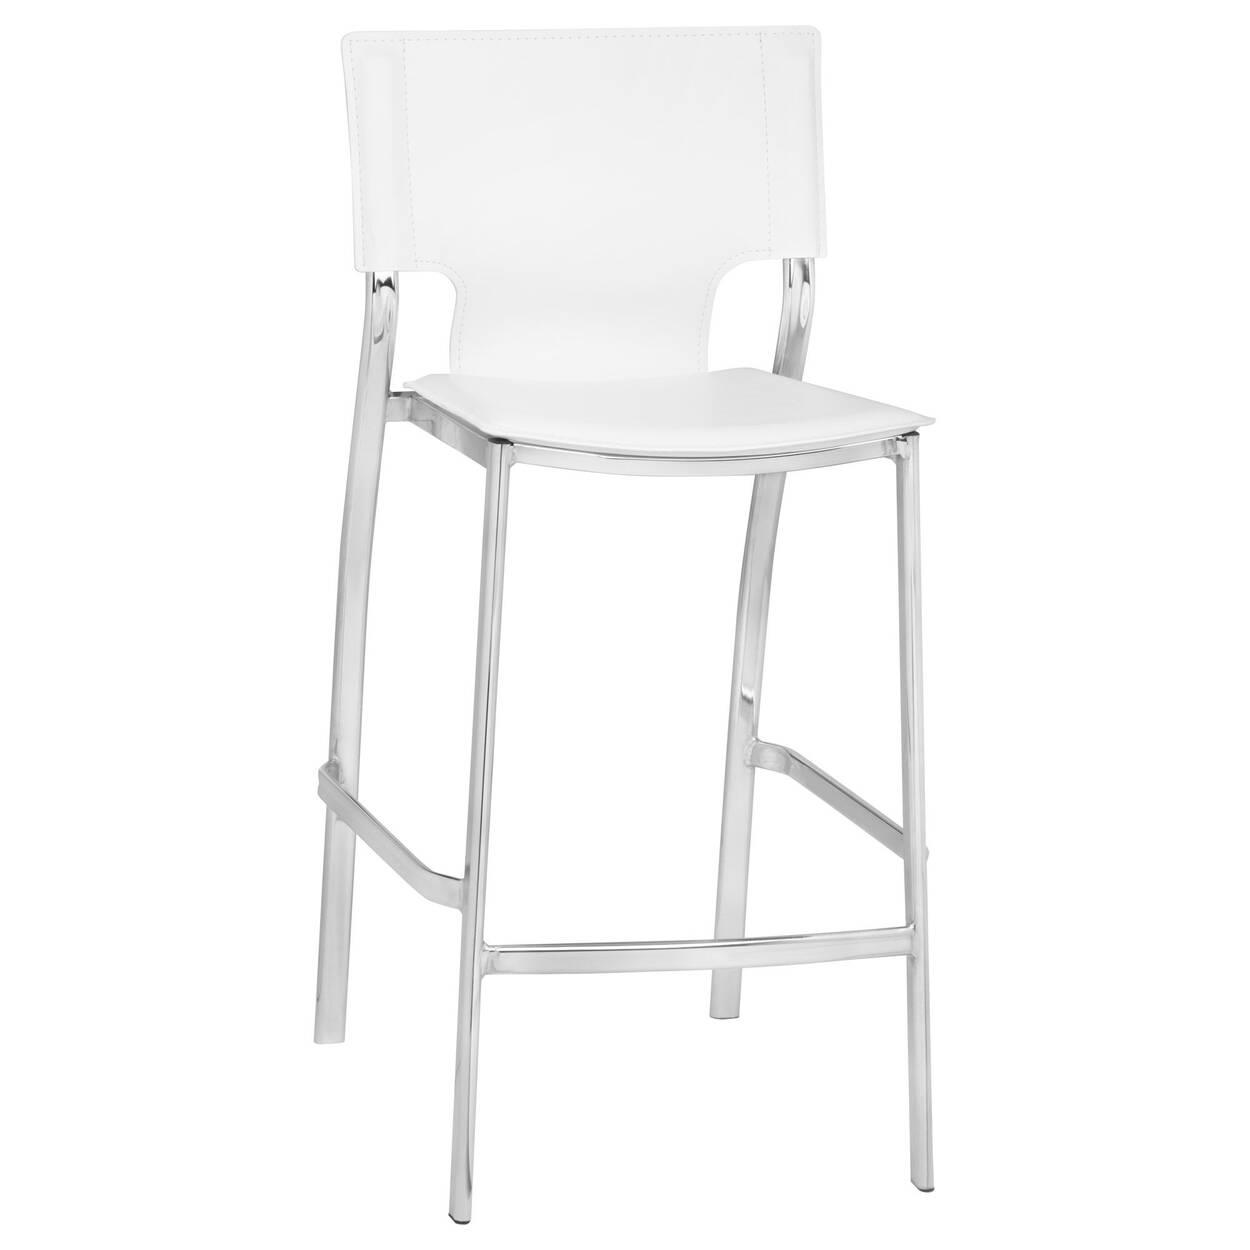 Sensational Faux Leather And Metal Bar Stool Gmtry Best Dining Table And Chair Ideas Images Gmtryco